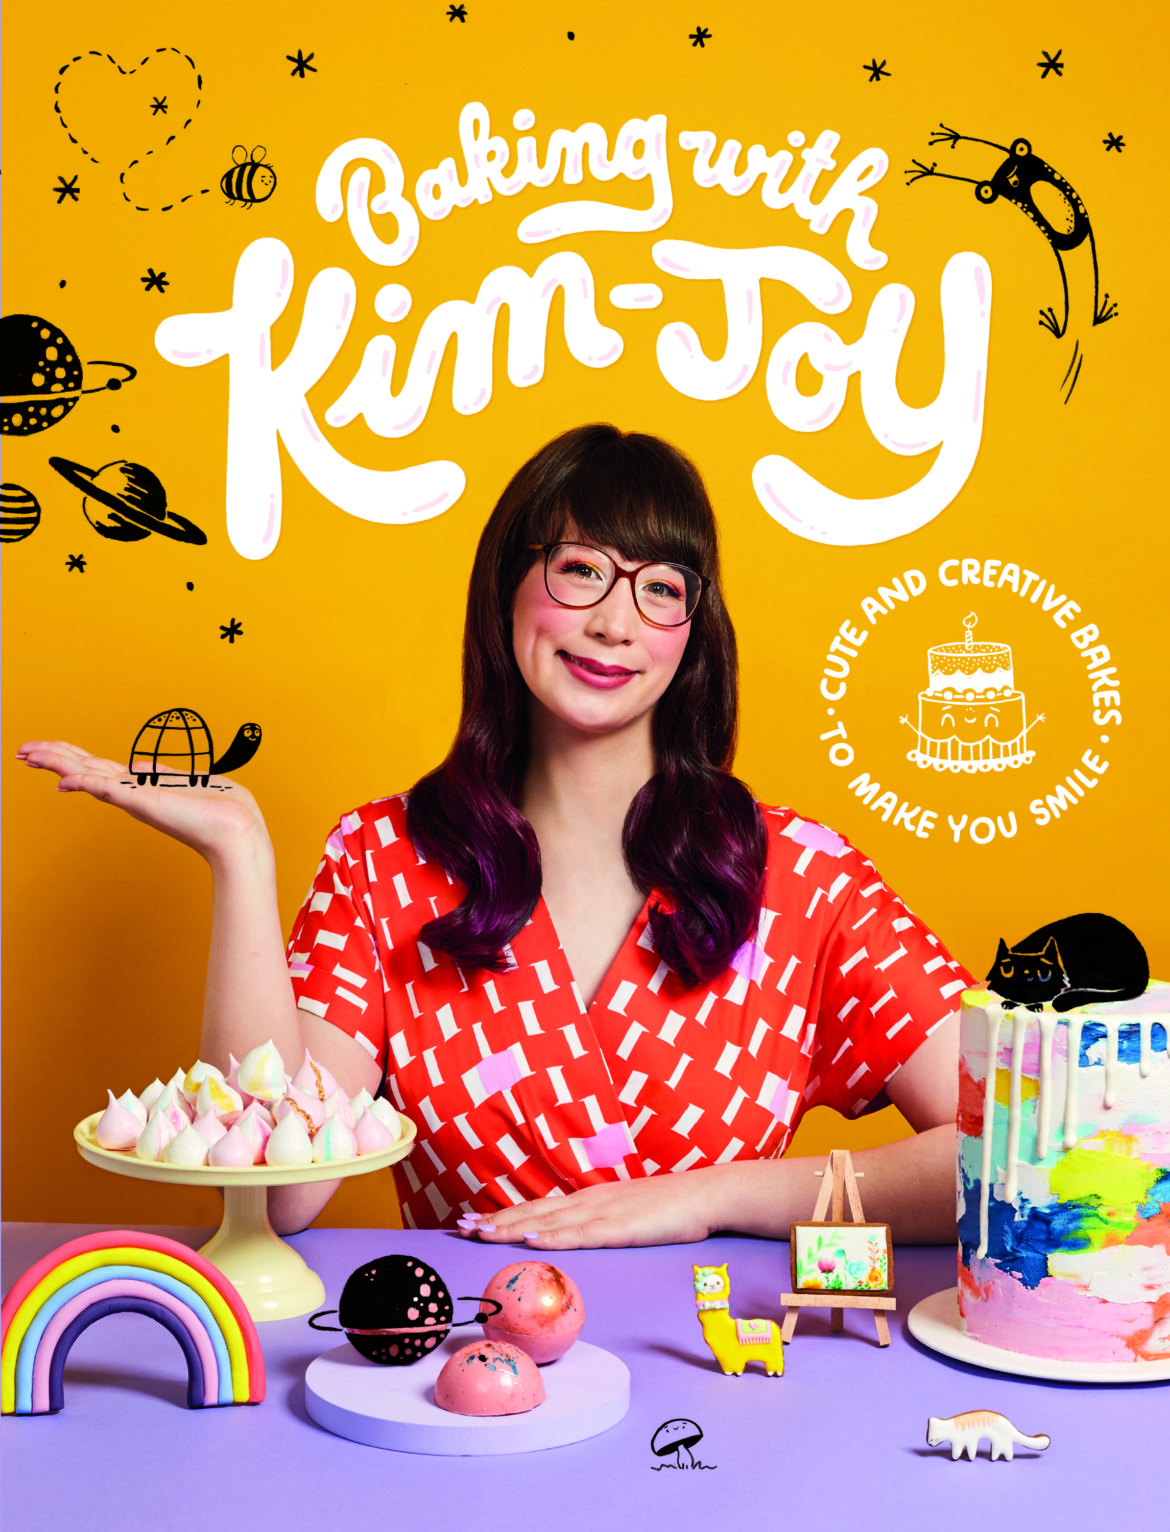 Book cover: Baking with Kim-Joy. Shows the author sitting at a table surrounded by her bakes